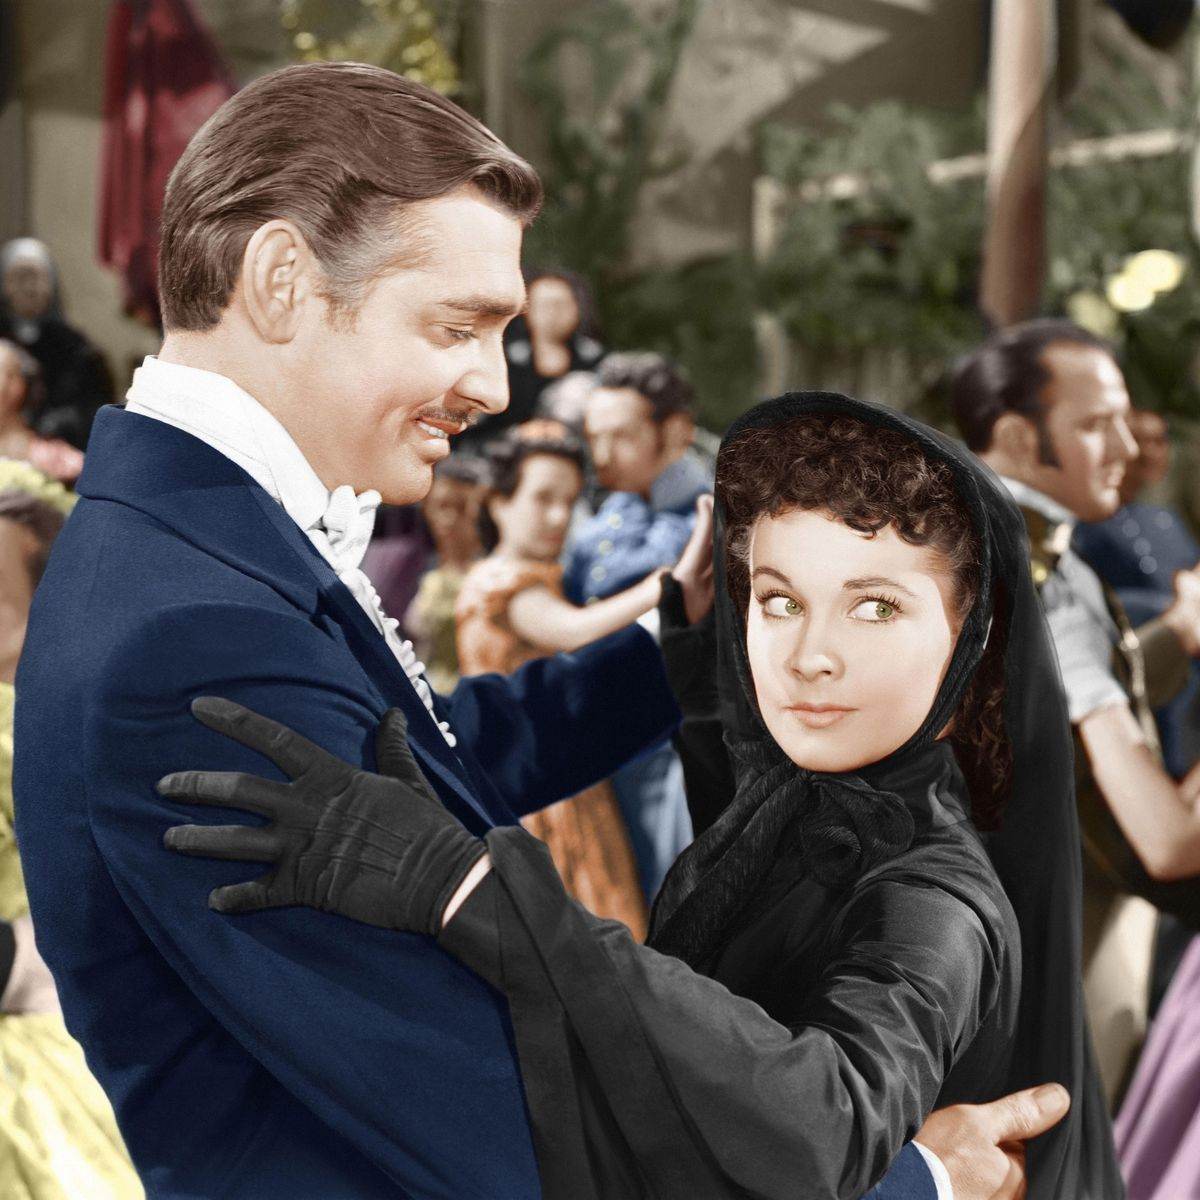 Removing Gone With The Wind From Hbo Max Changes Nothing